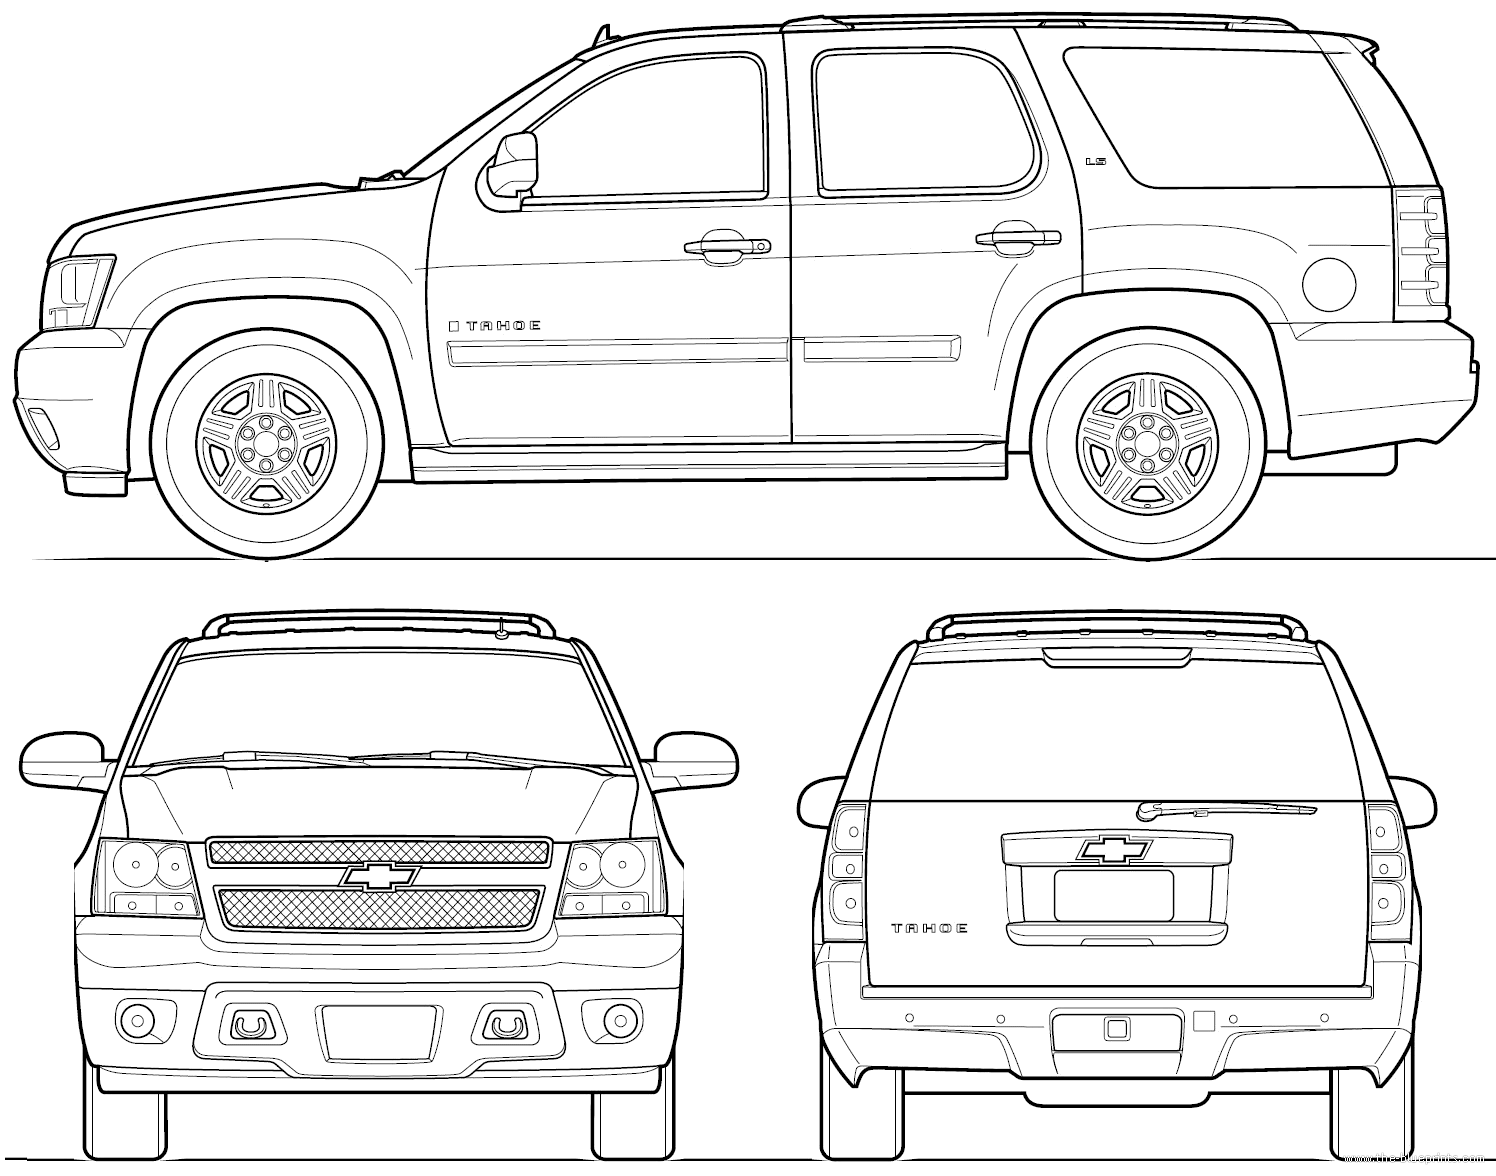 Chevy tahoe drawings for Blueprint sizes